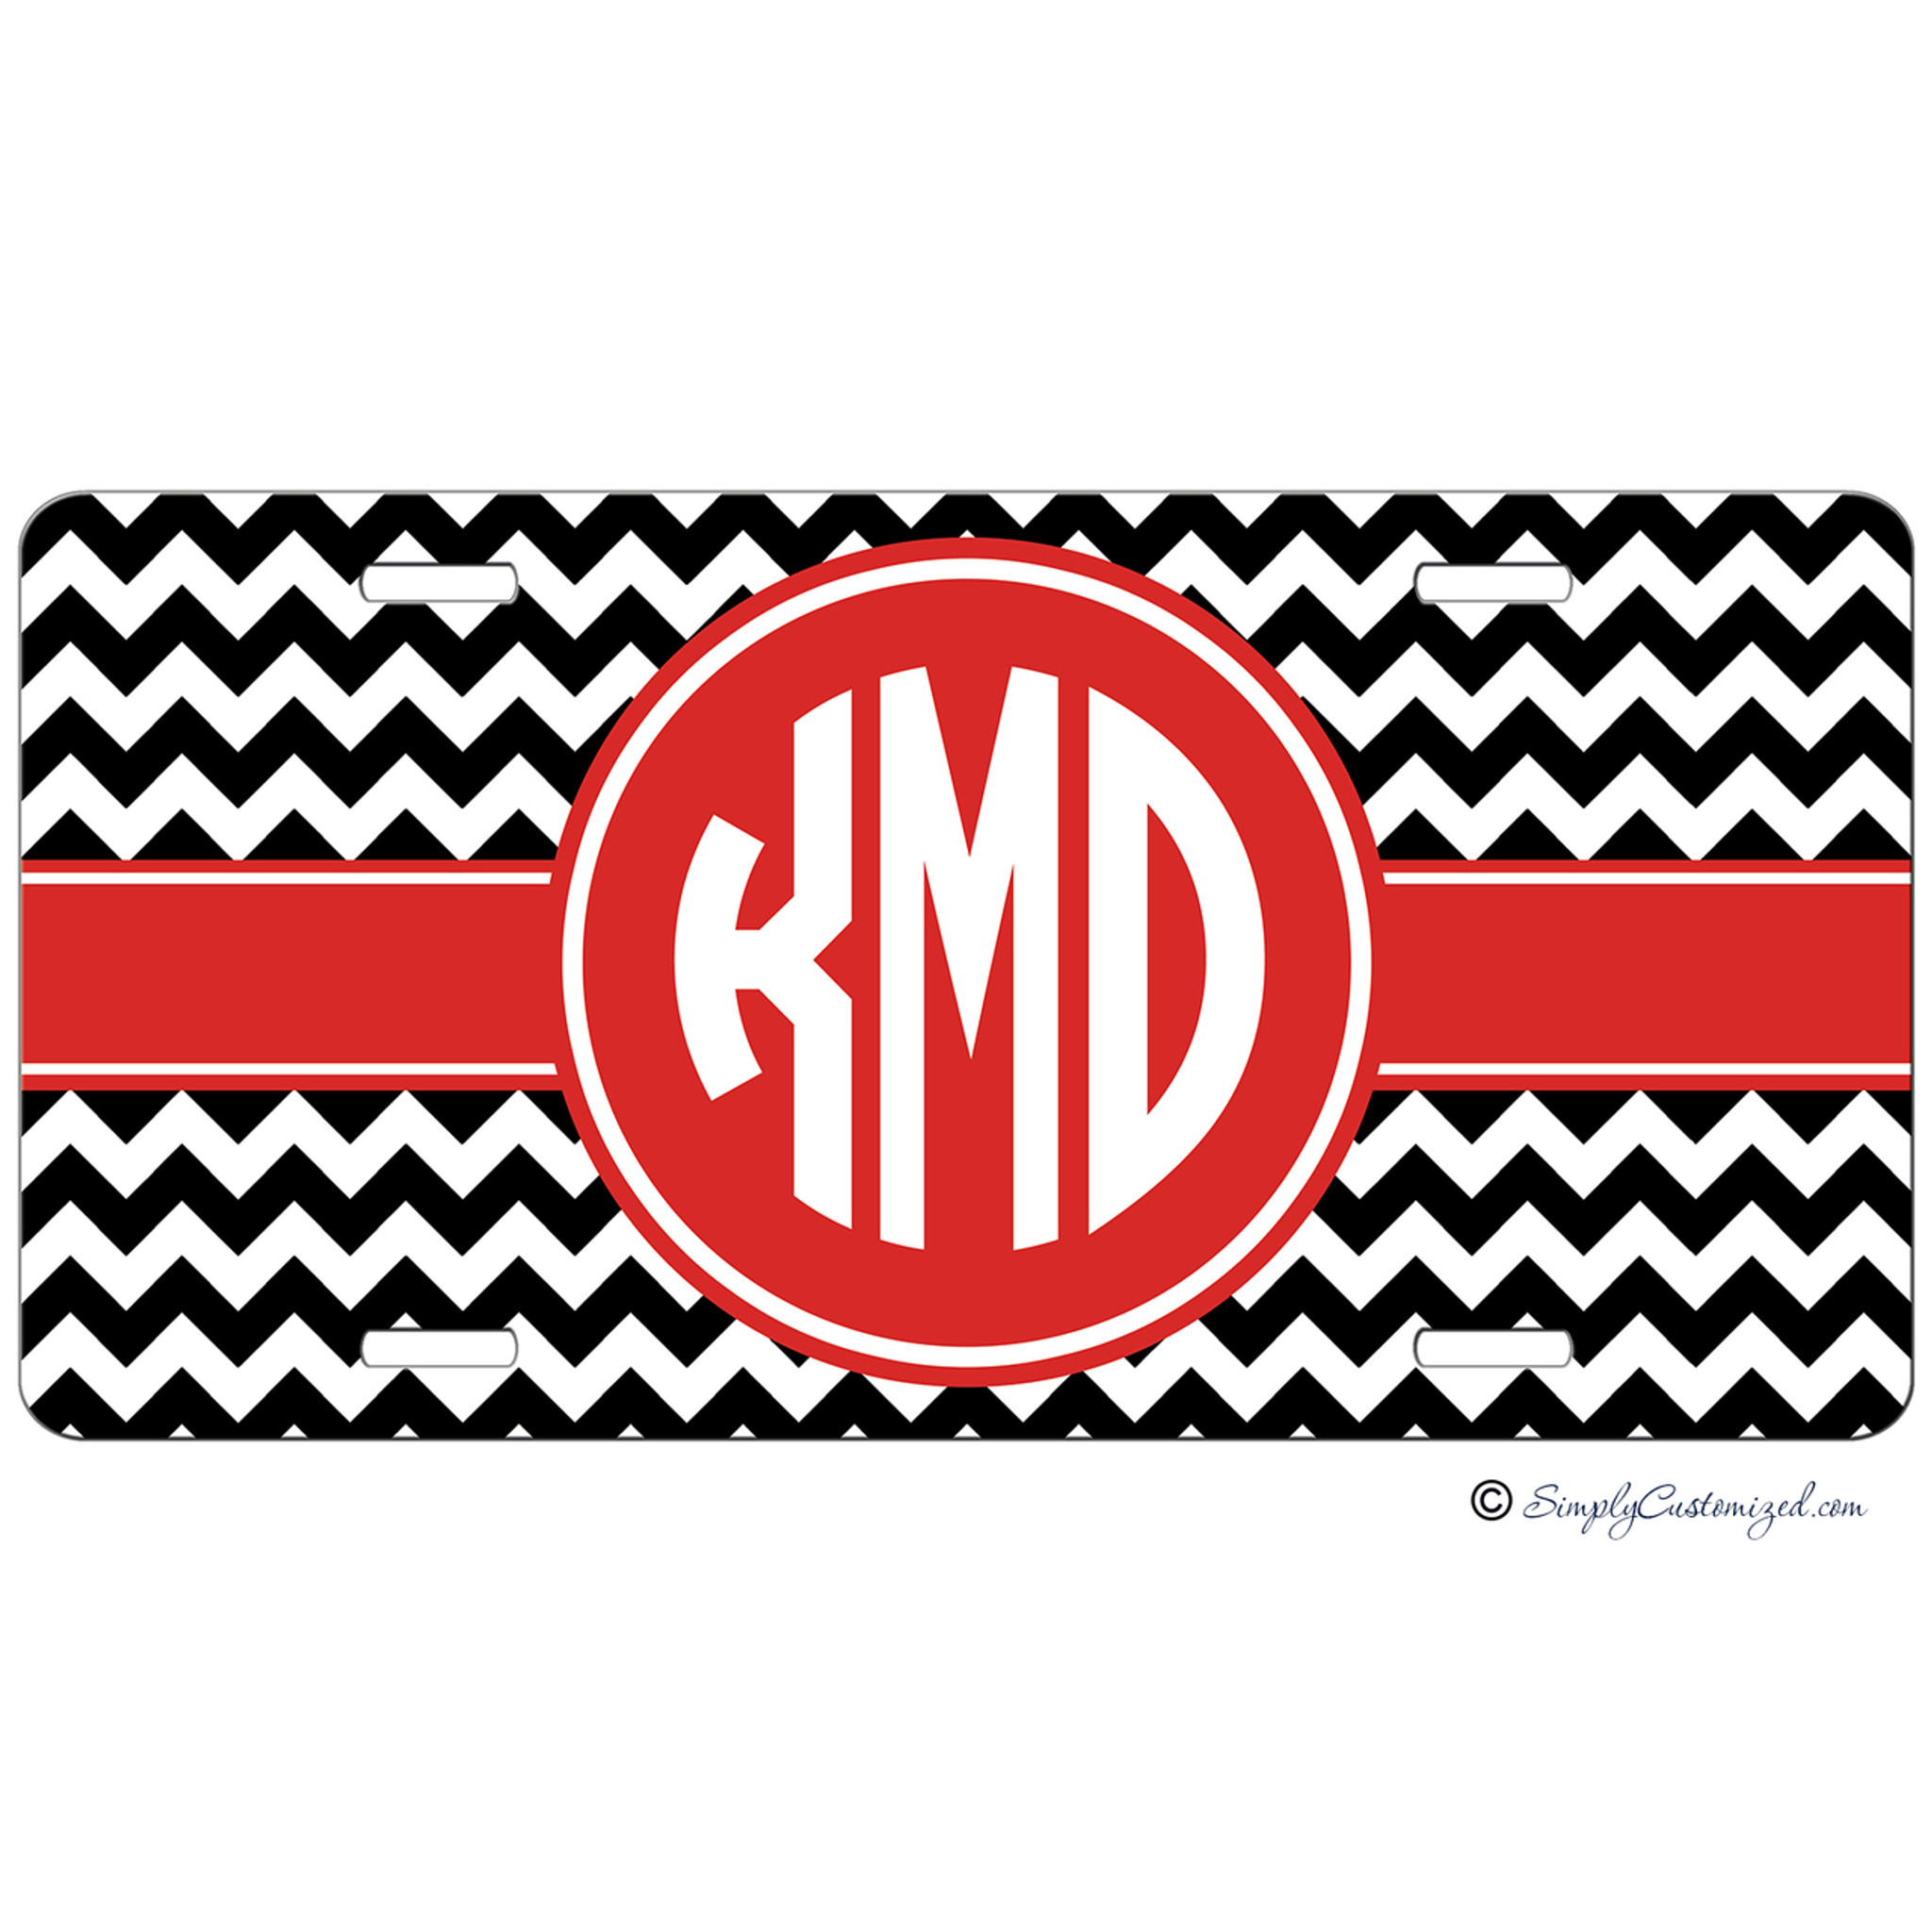 Monogrammed Car Tag Black Chevron With Red Accent